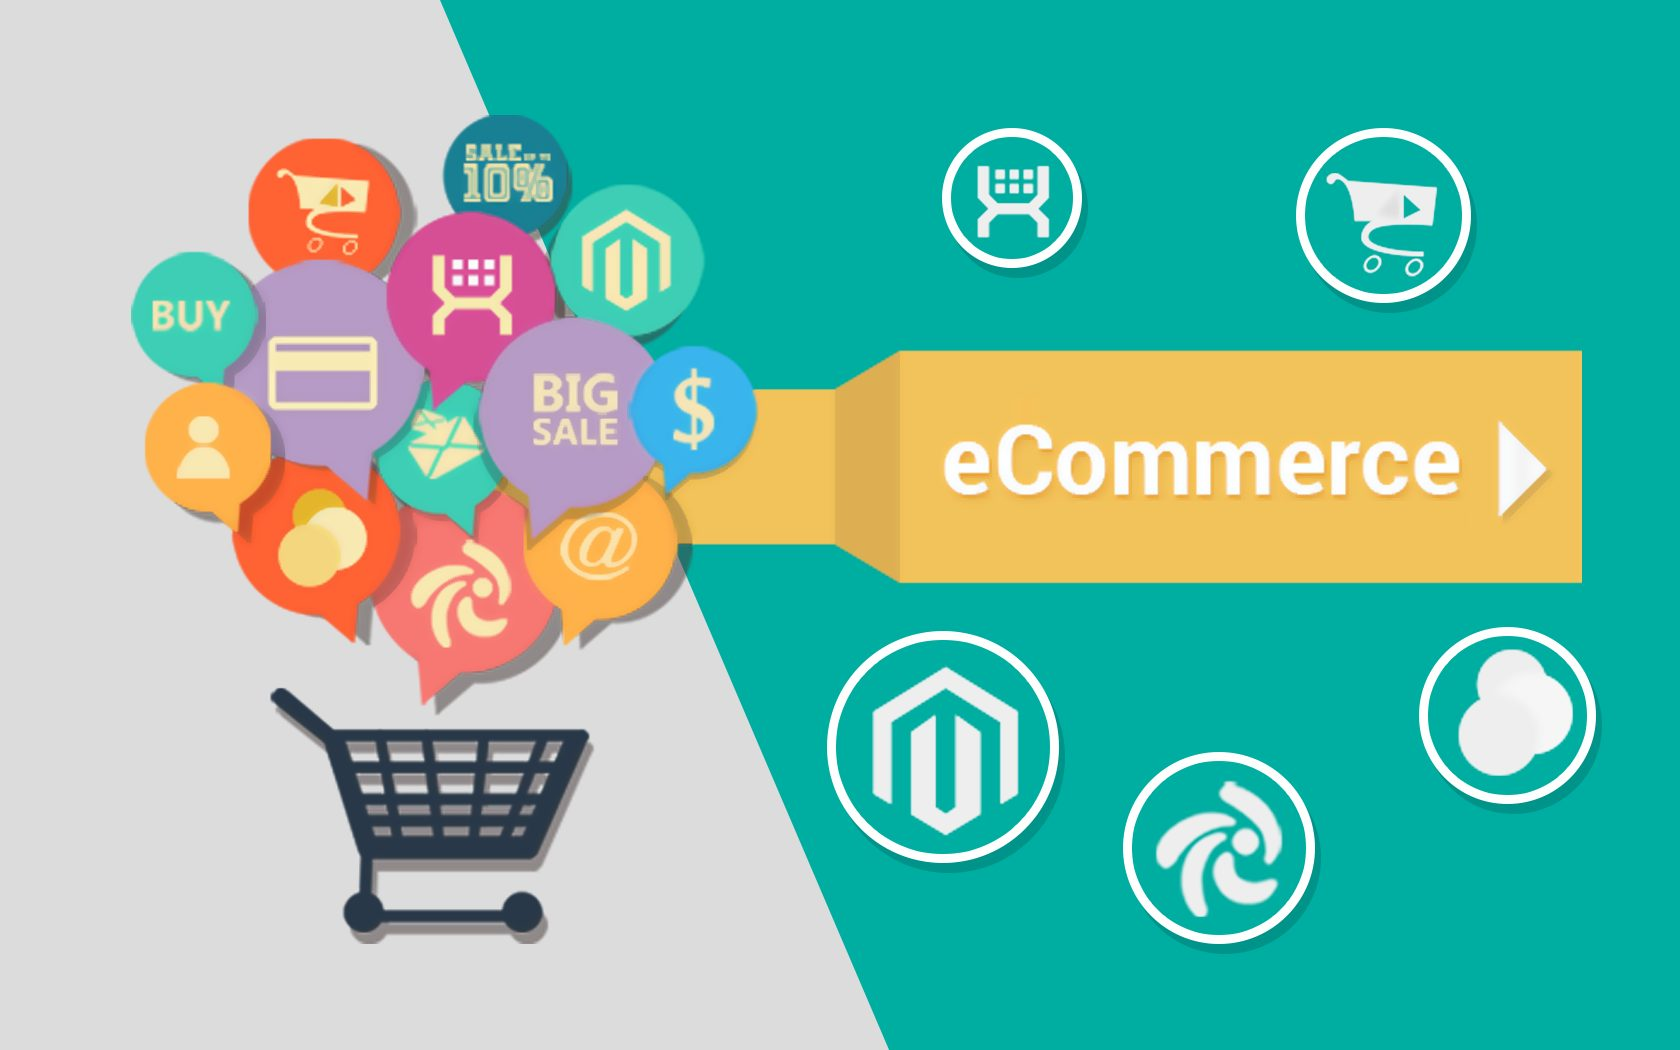 How to create Sales Campaigns on E-Commerce Sites